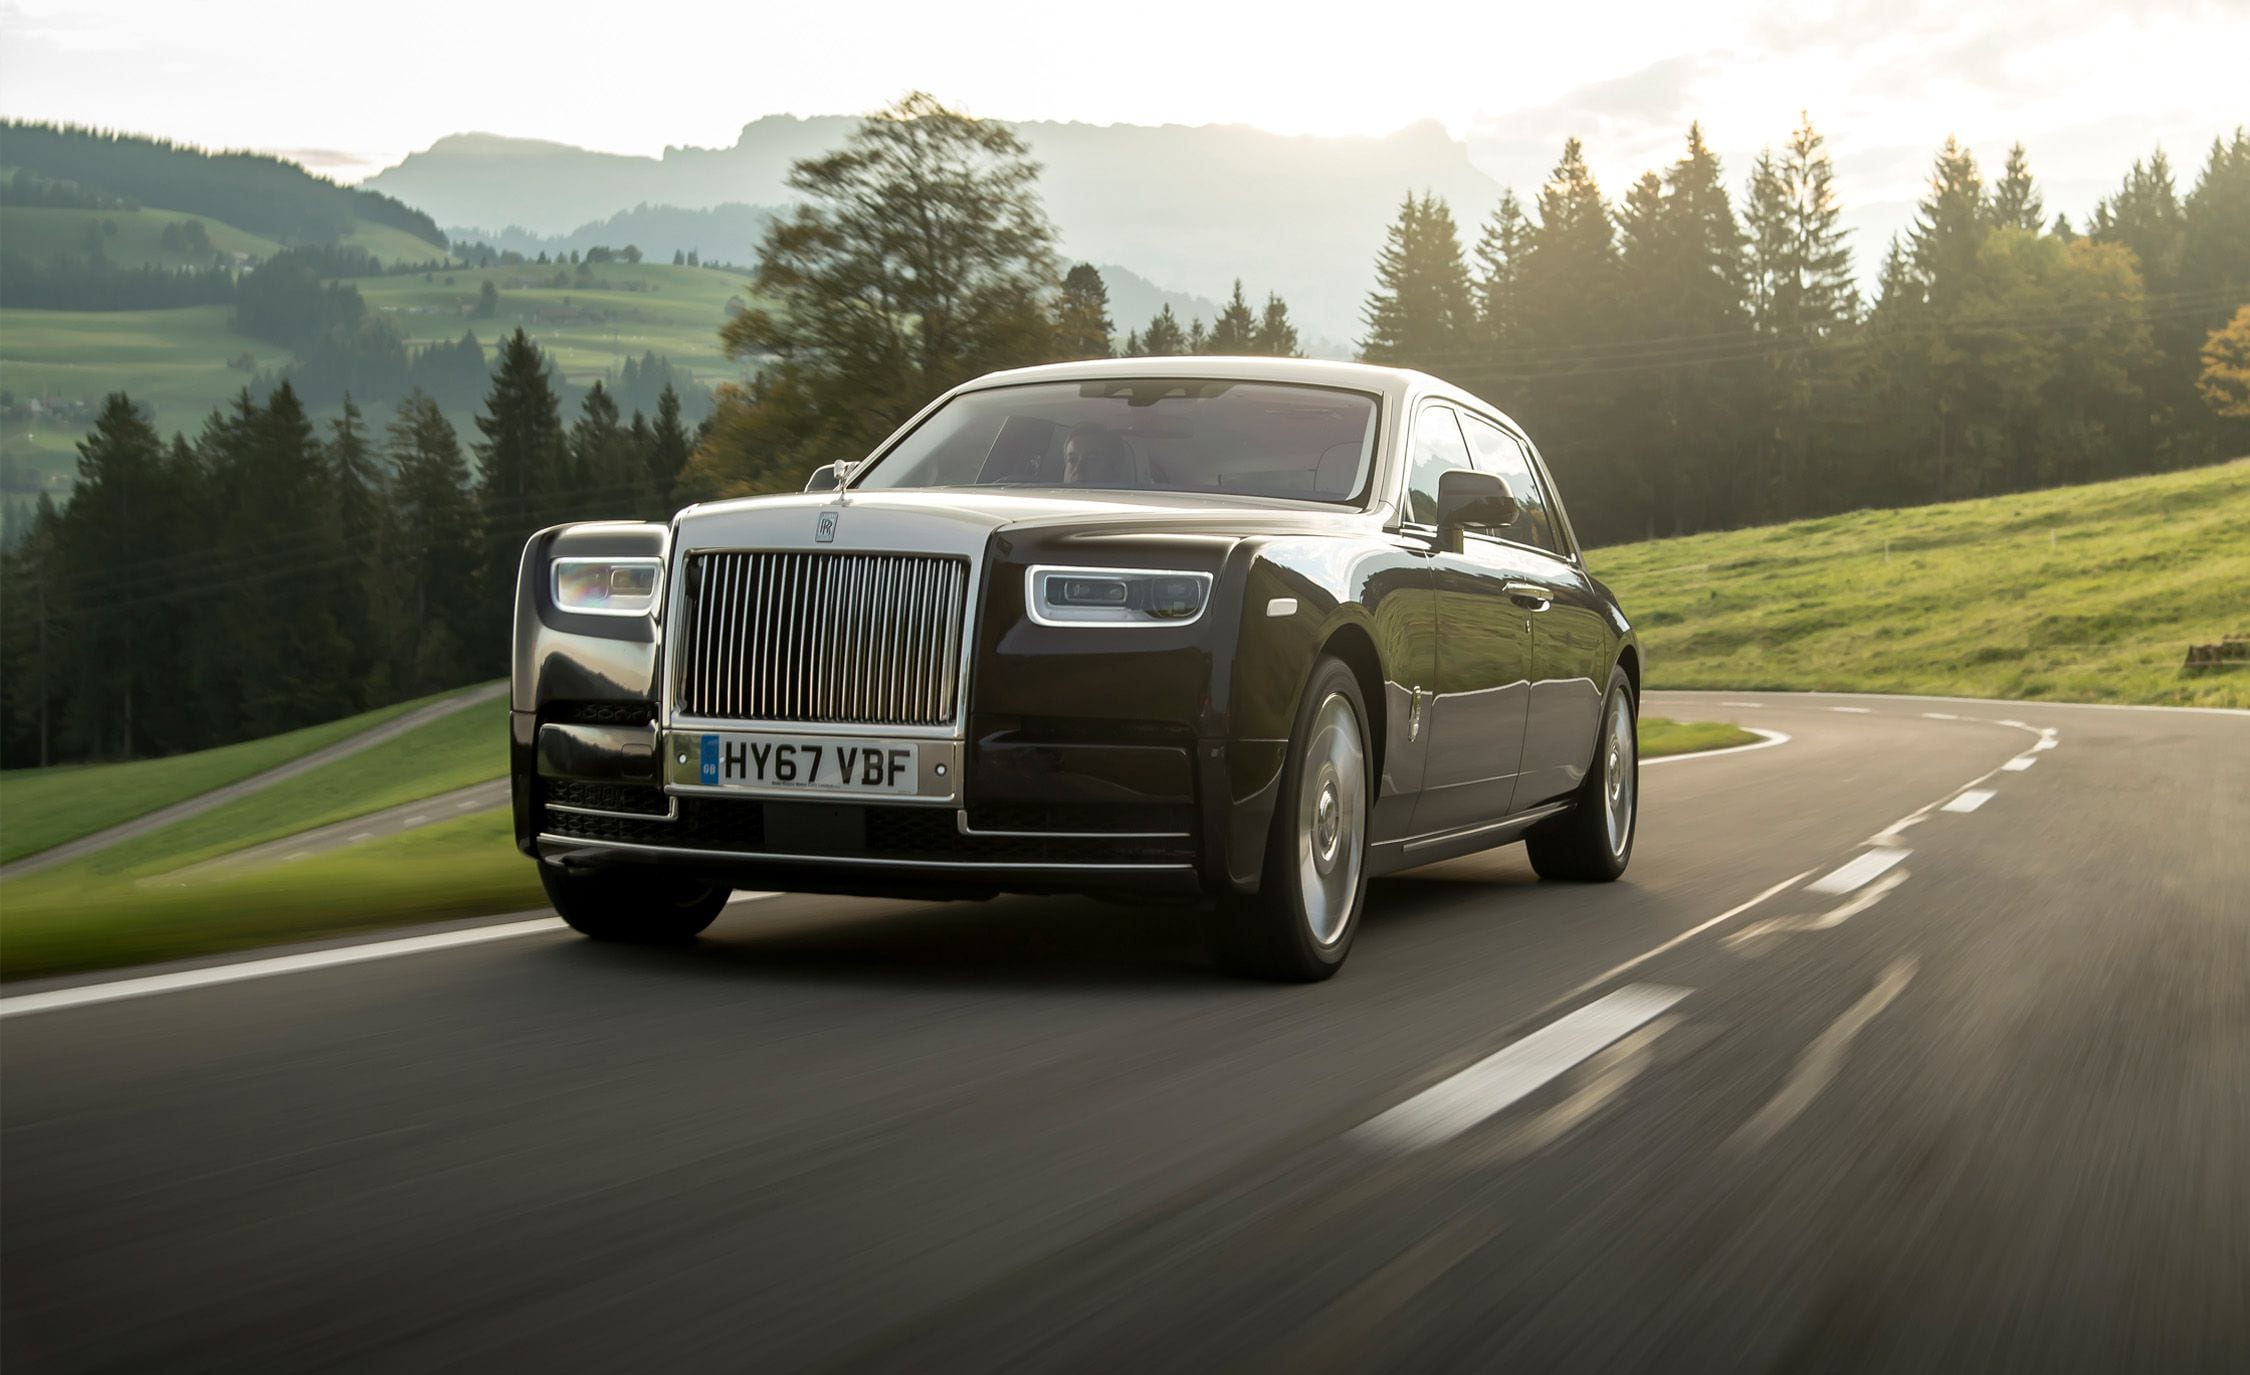 Rolls Royce Phantom Wallpaper Image